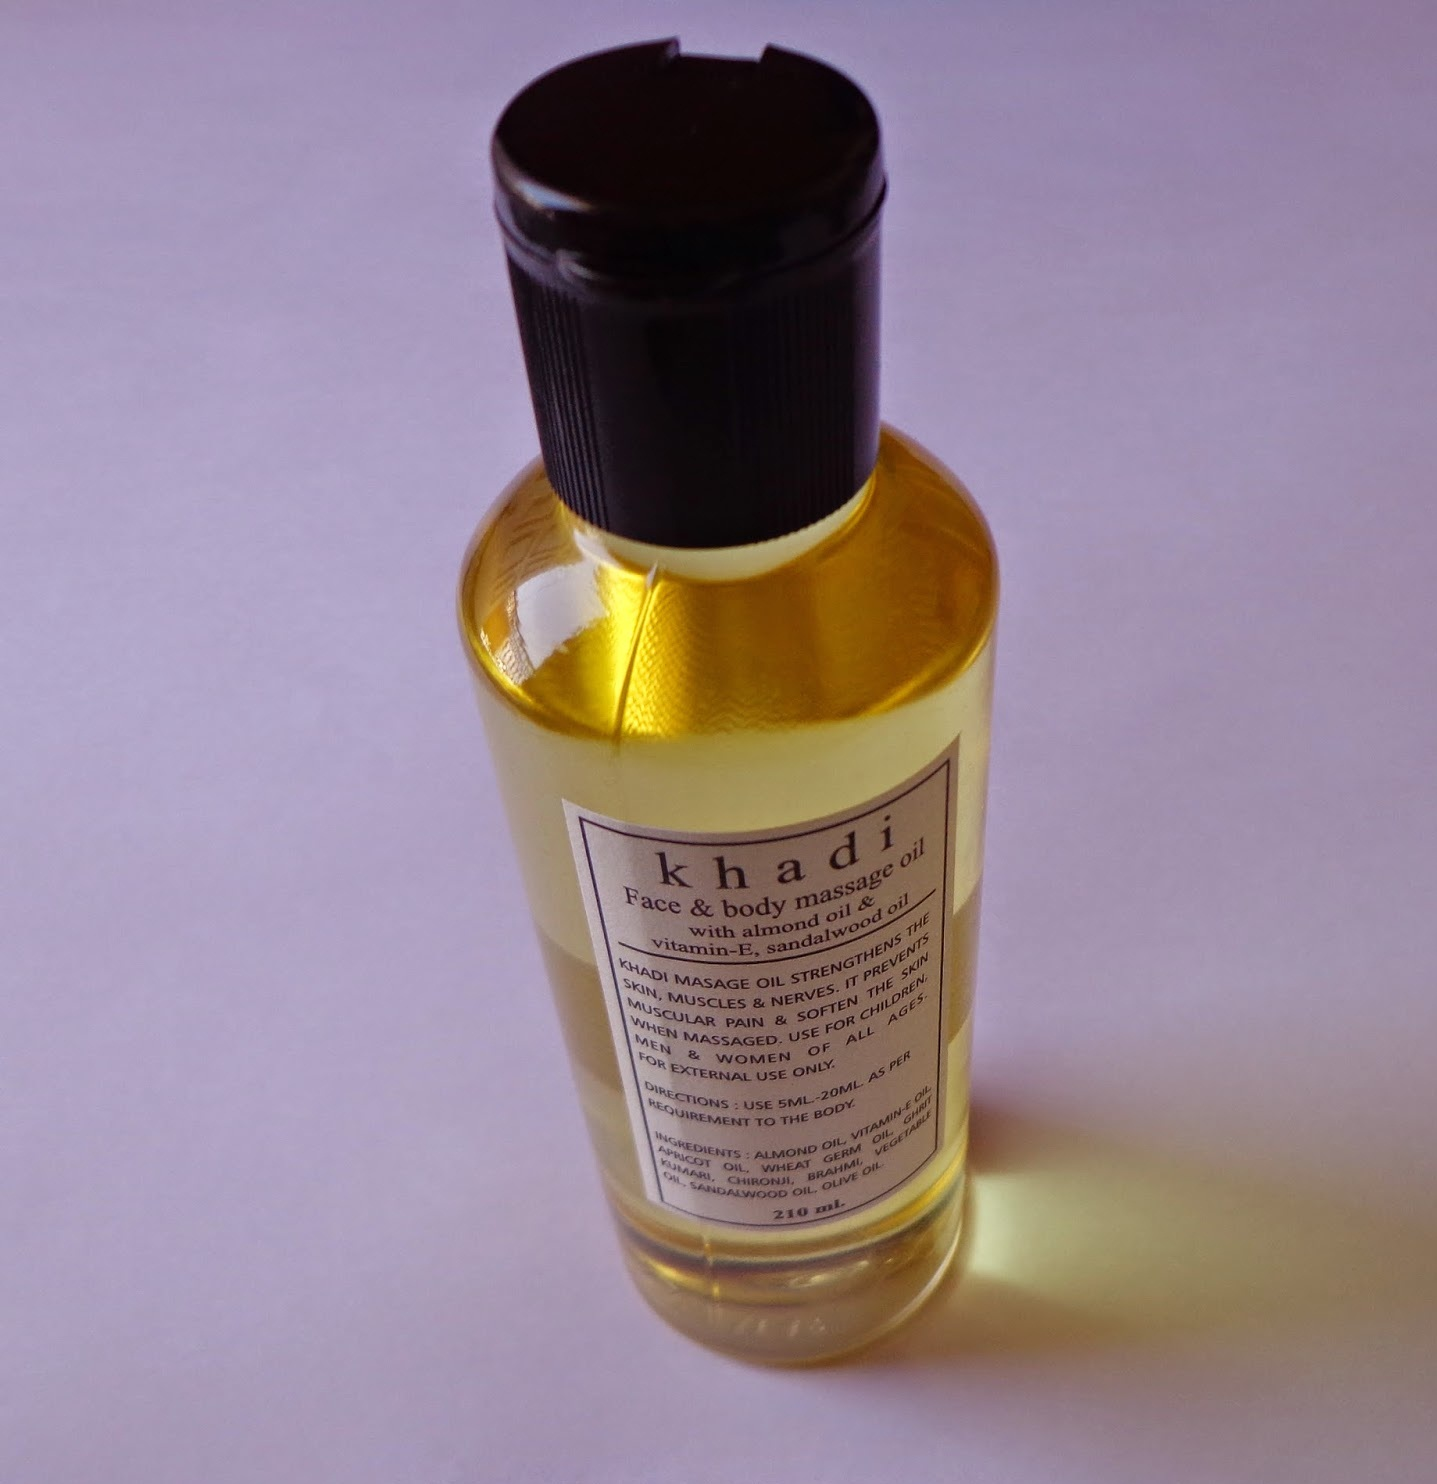 buy Khadi Face & Body Massage Oil with almond oil Vitamin-E, Sandalwood Oil 210ml in UK & USA